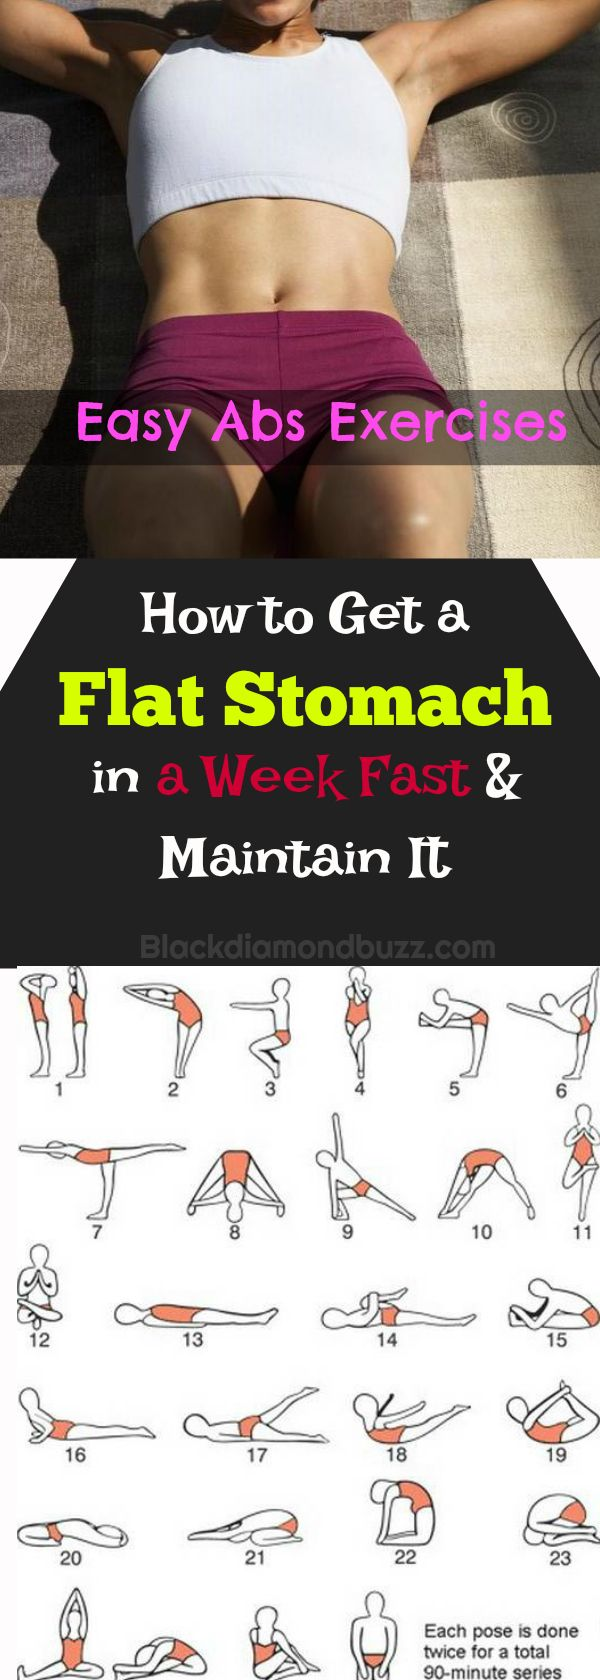 How to Get a Flat Stomach in a Week Fast and Maintain It with easy abs exercises and diet